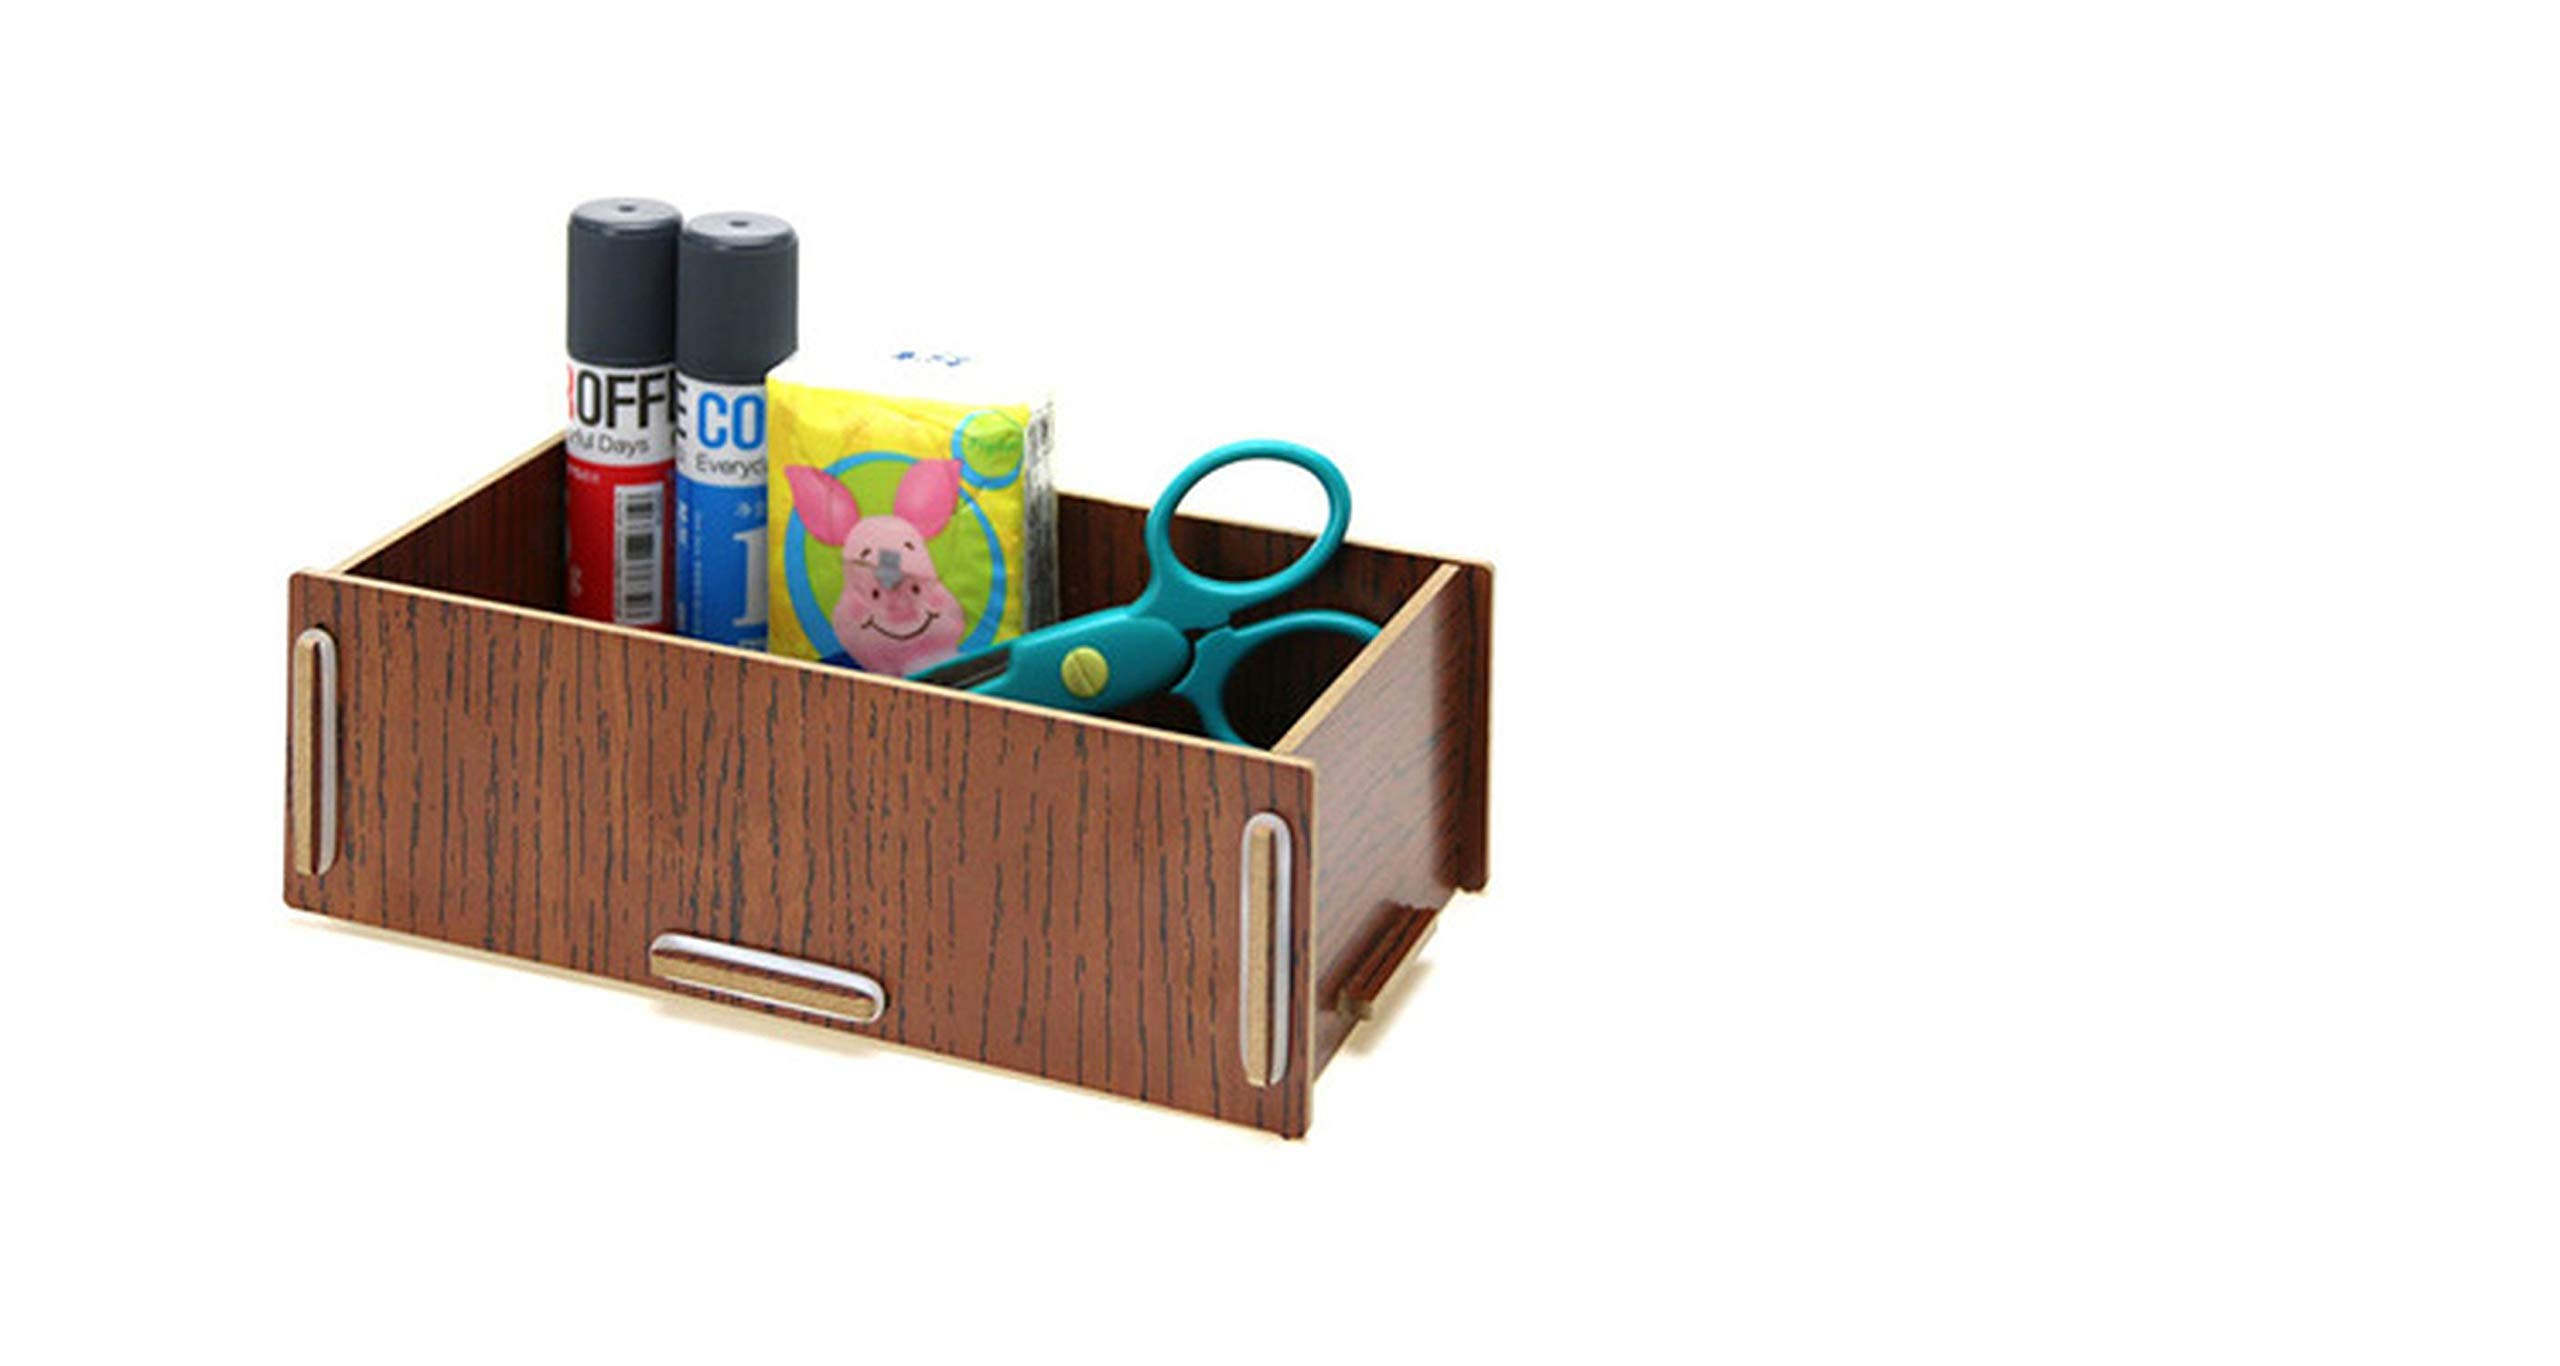 Wood Desktop Office Stationery Collection Room Sundry Receive Box for Remote control/scissors/pen,05